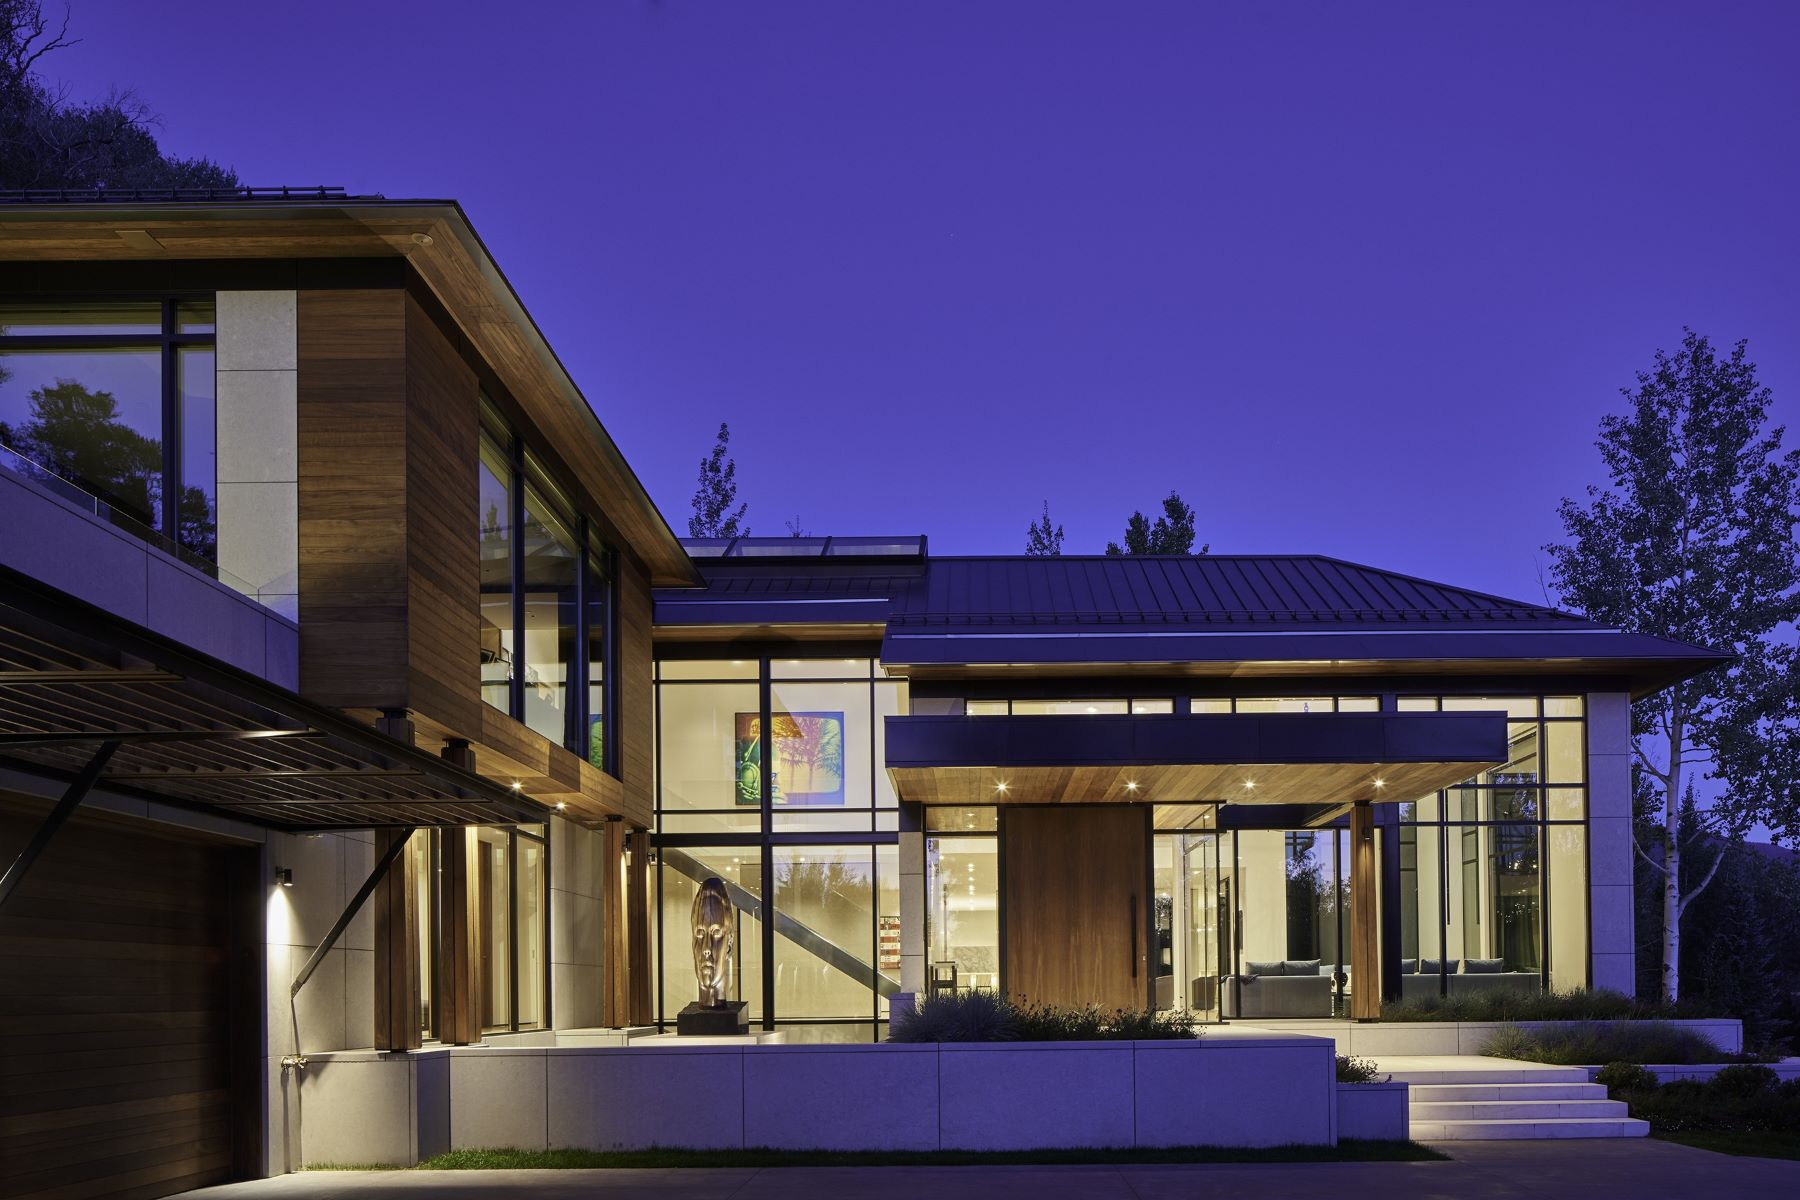 Single Family Home for Sale at Magnificent Contemporary Home with Extraordinary Views on Willoughby Way 343 Willoughby Way Aspen, Colorado, 81611 United States